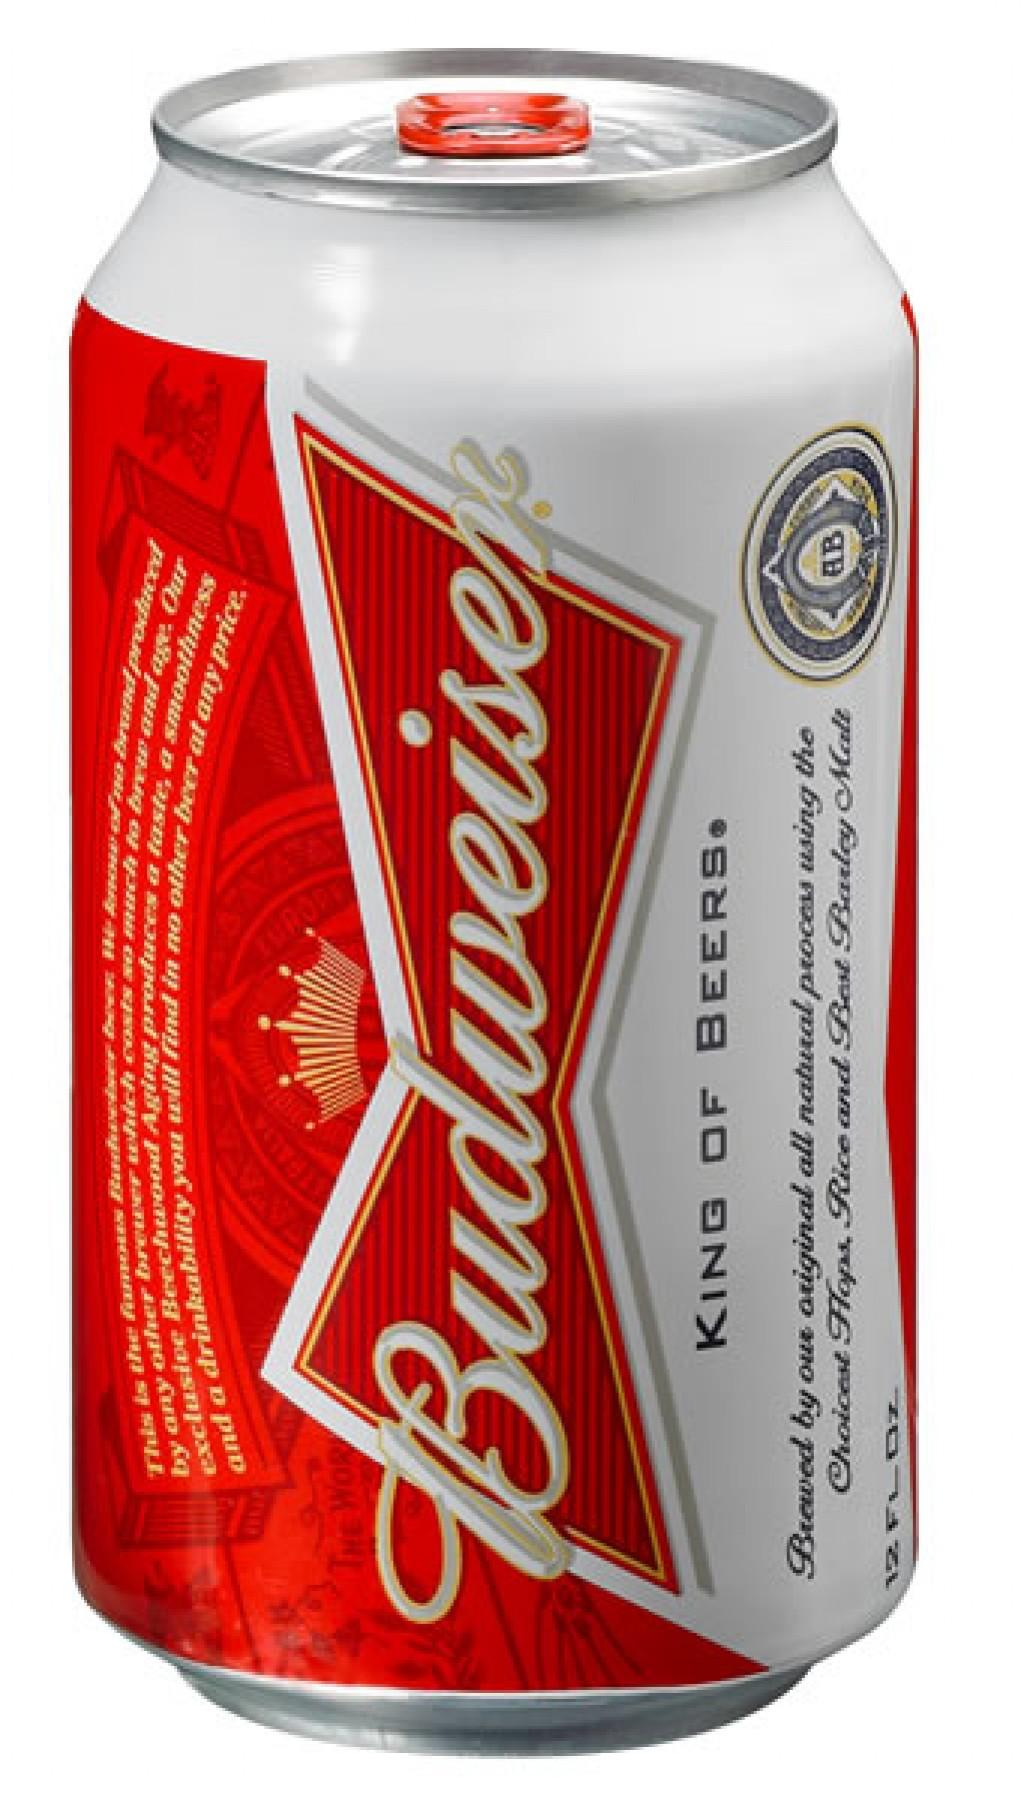 Budweiser unveils new can design  Will it goose sales? | Business